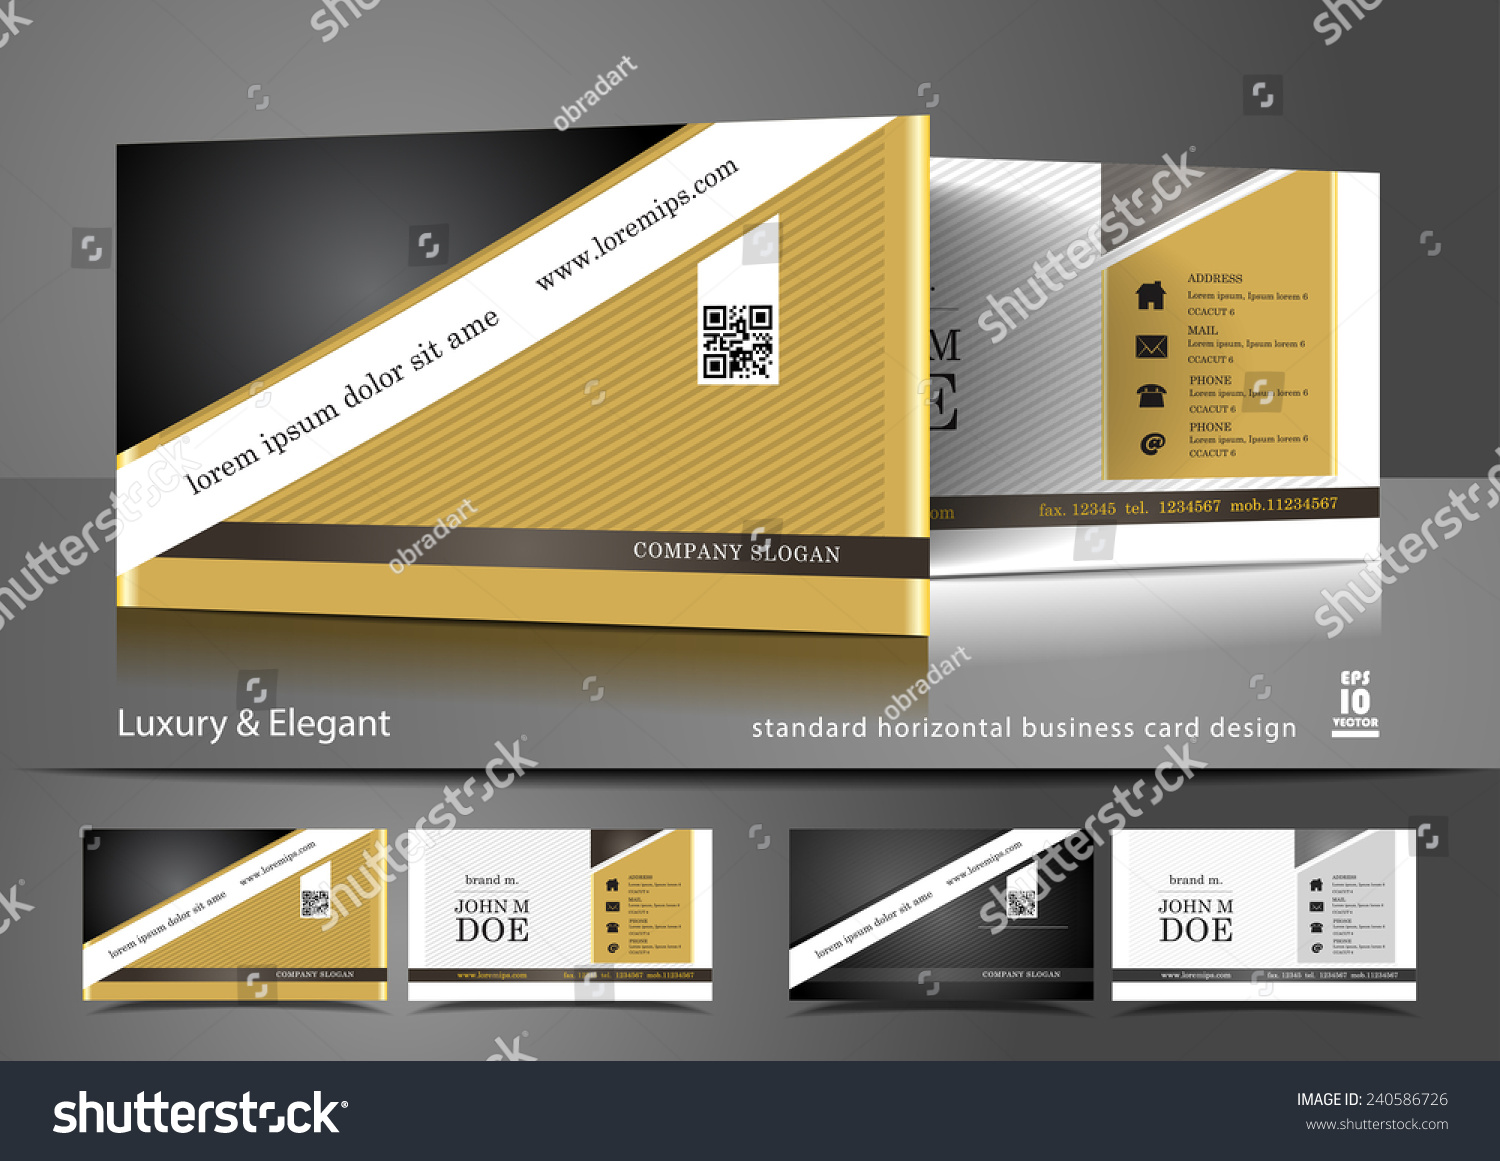 Old Fashioned Business Cards Gallery - Free Business Cards